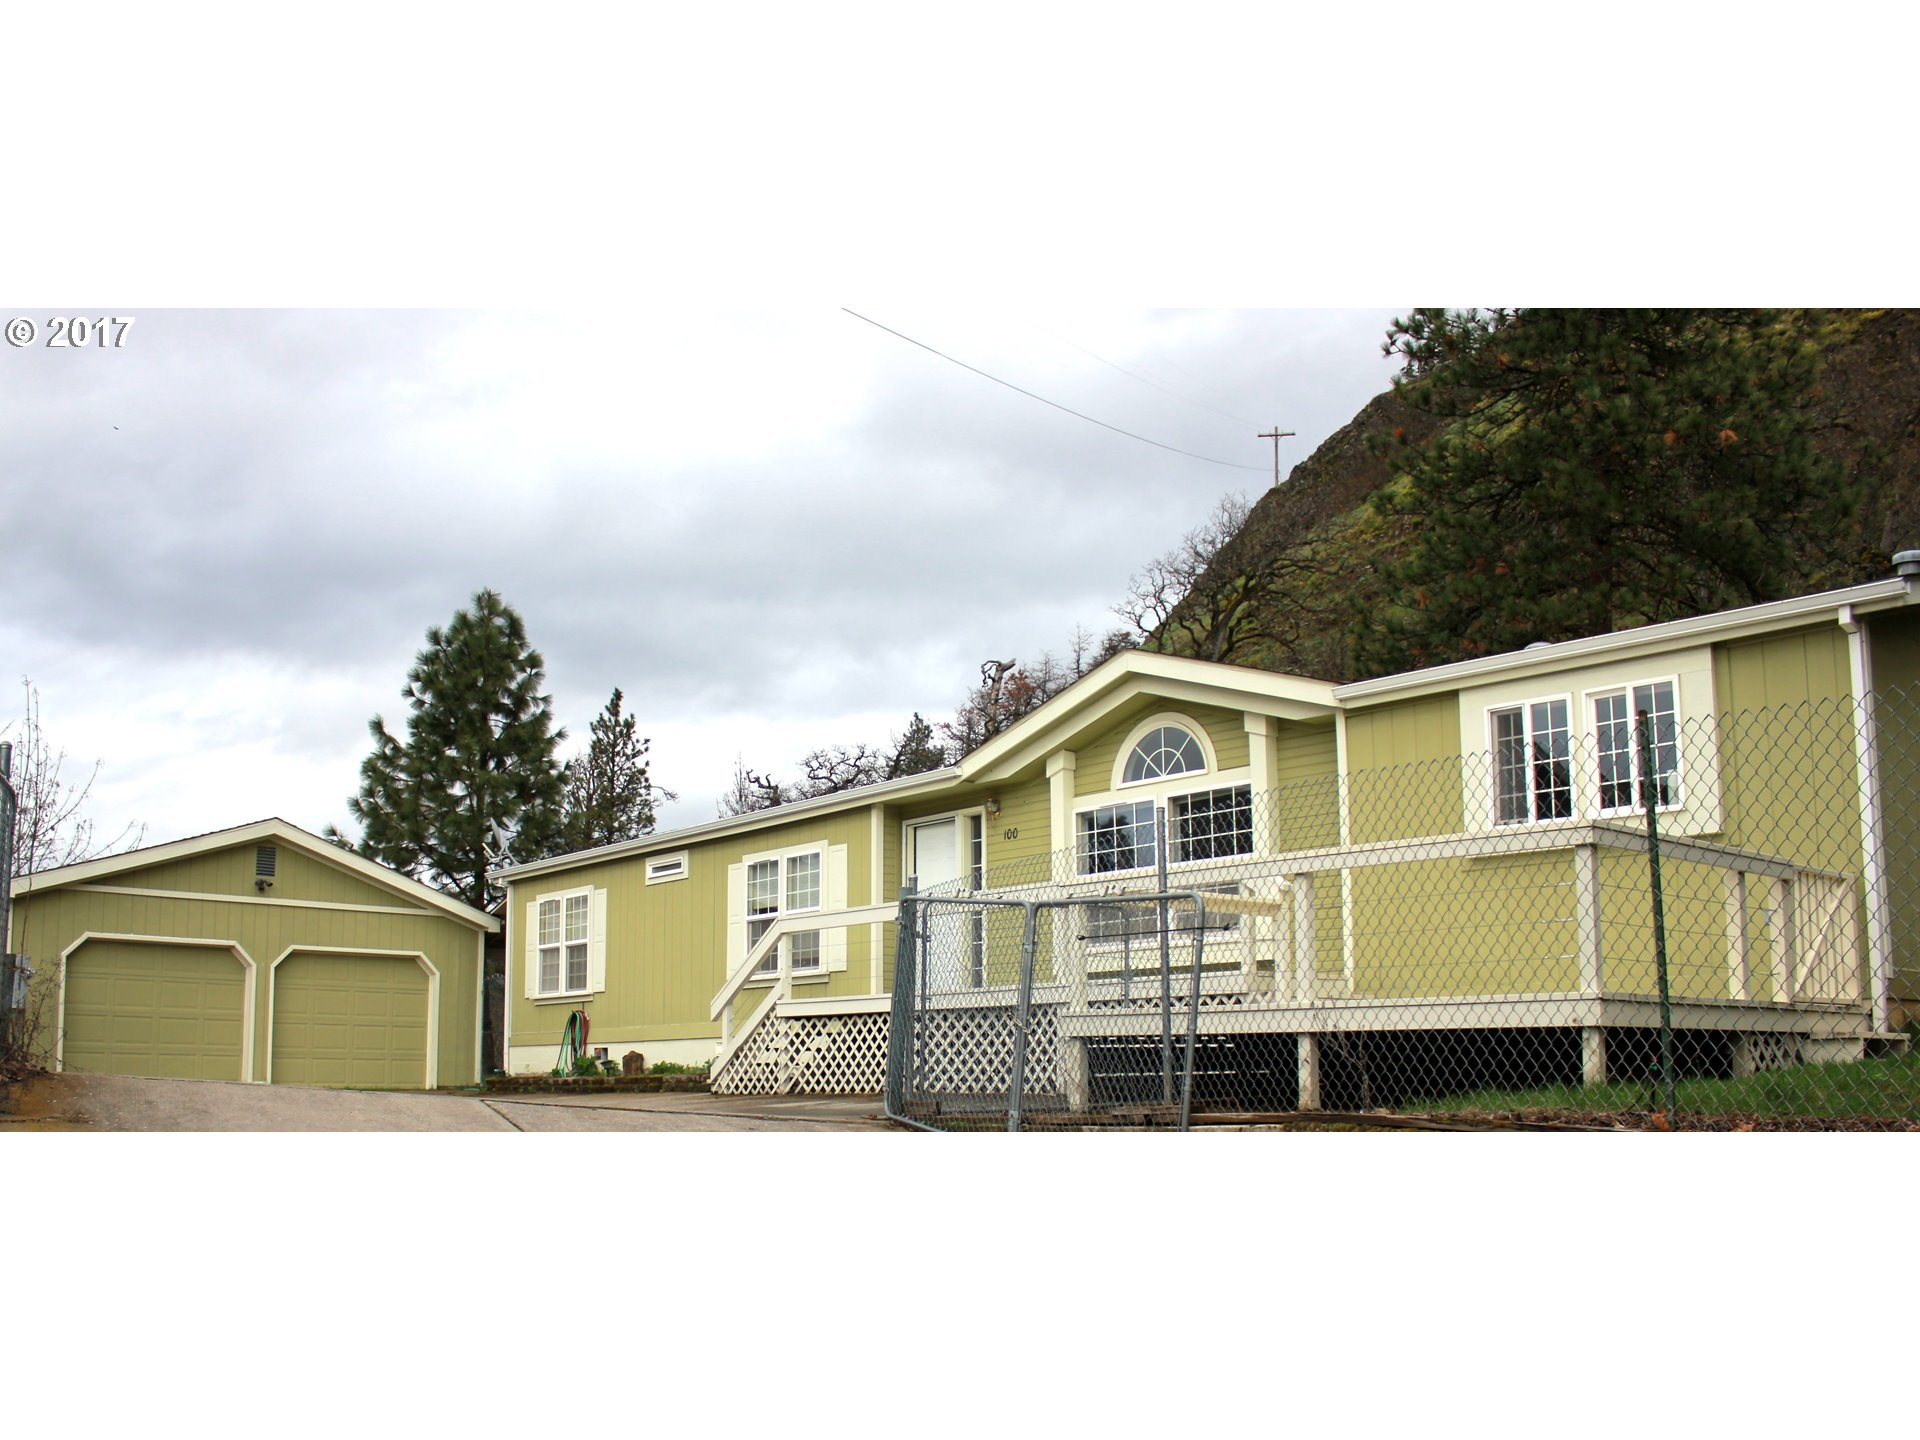 100 CHERRY HILL DR, Mosier, OR 97040